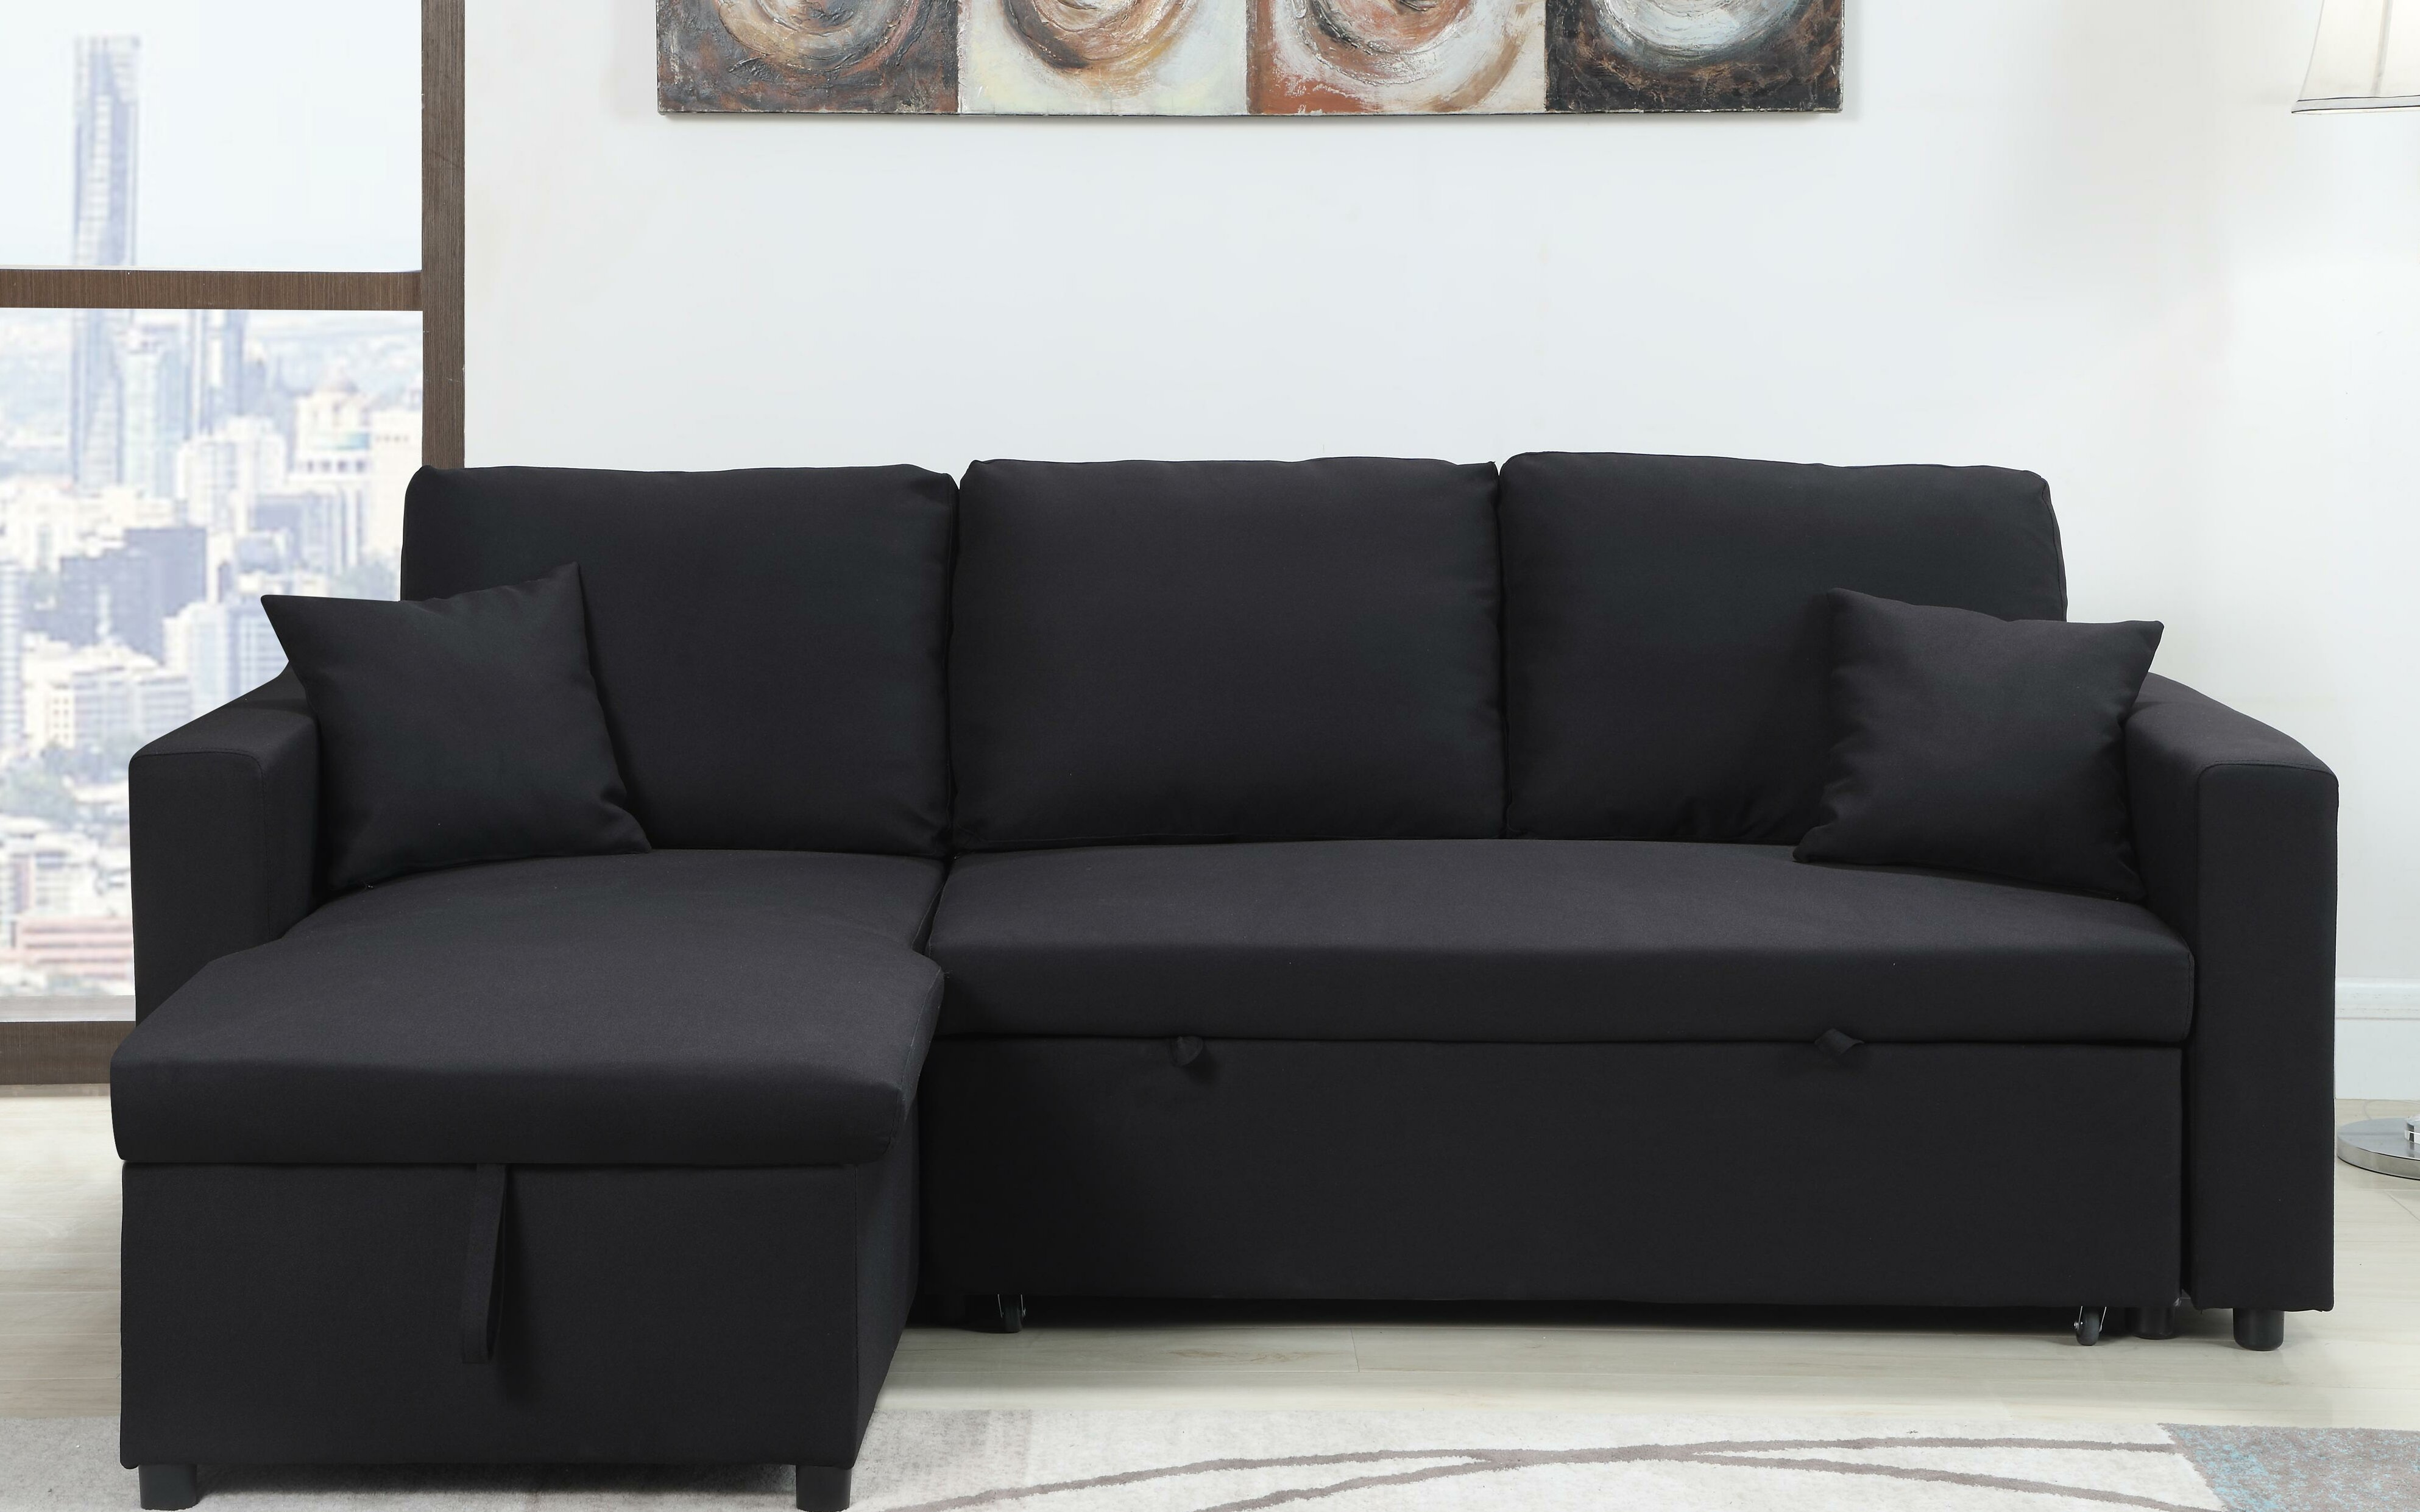 out of queen black full pull sofa size fold seater couch small u amazing shaped bed leather idea living sectional the room